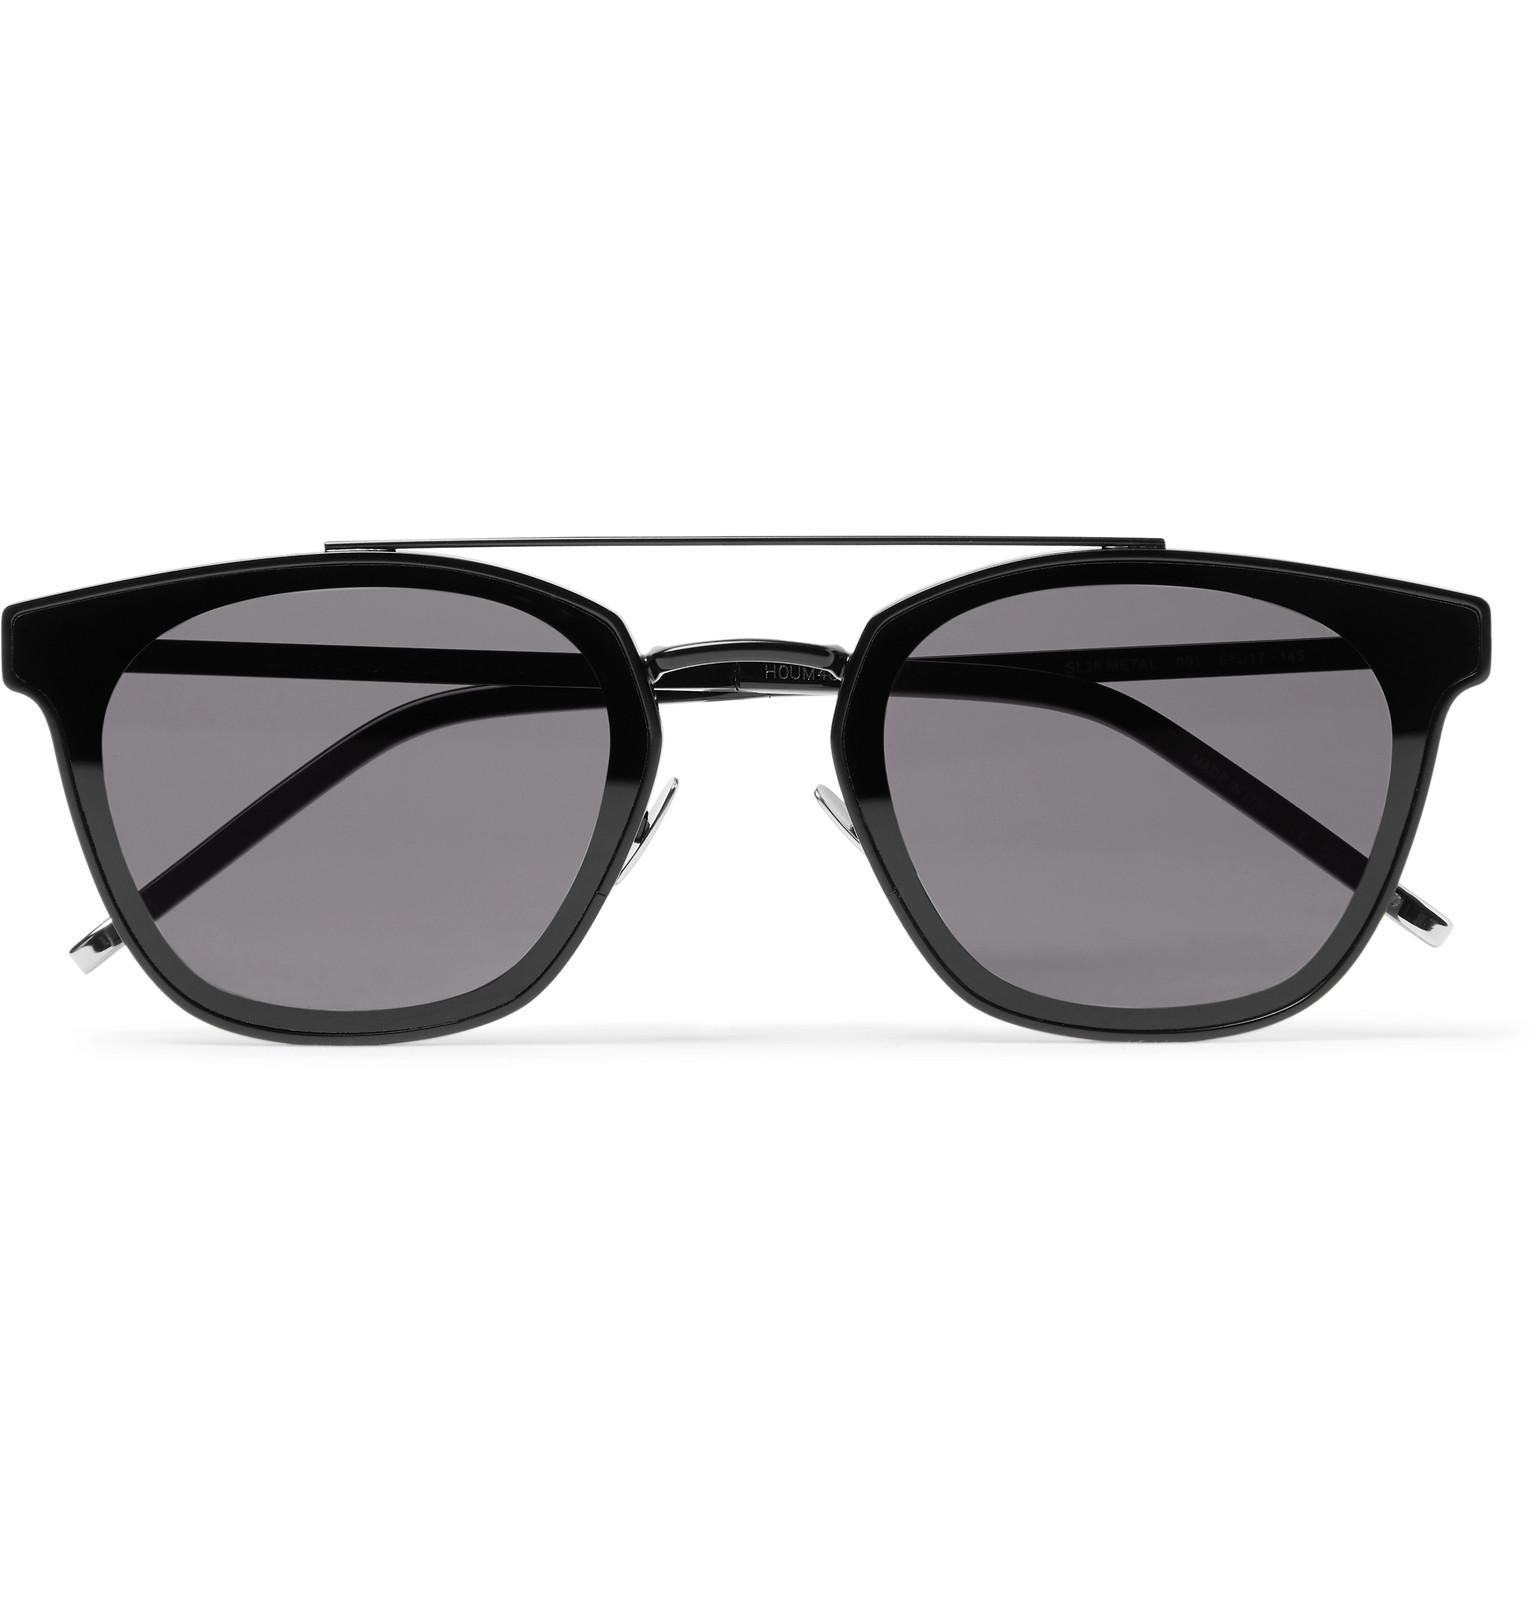 dd6cecefd4 Lyst - Saint Laurent Aviator-style Metal Sunglasses in Black for Men